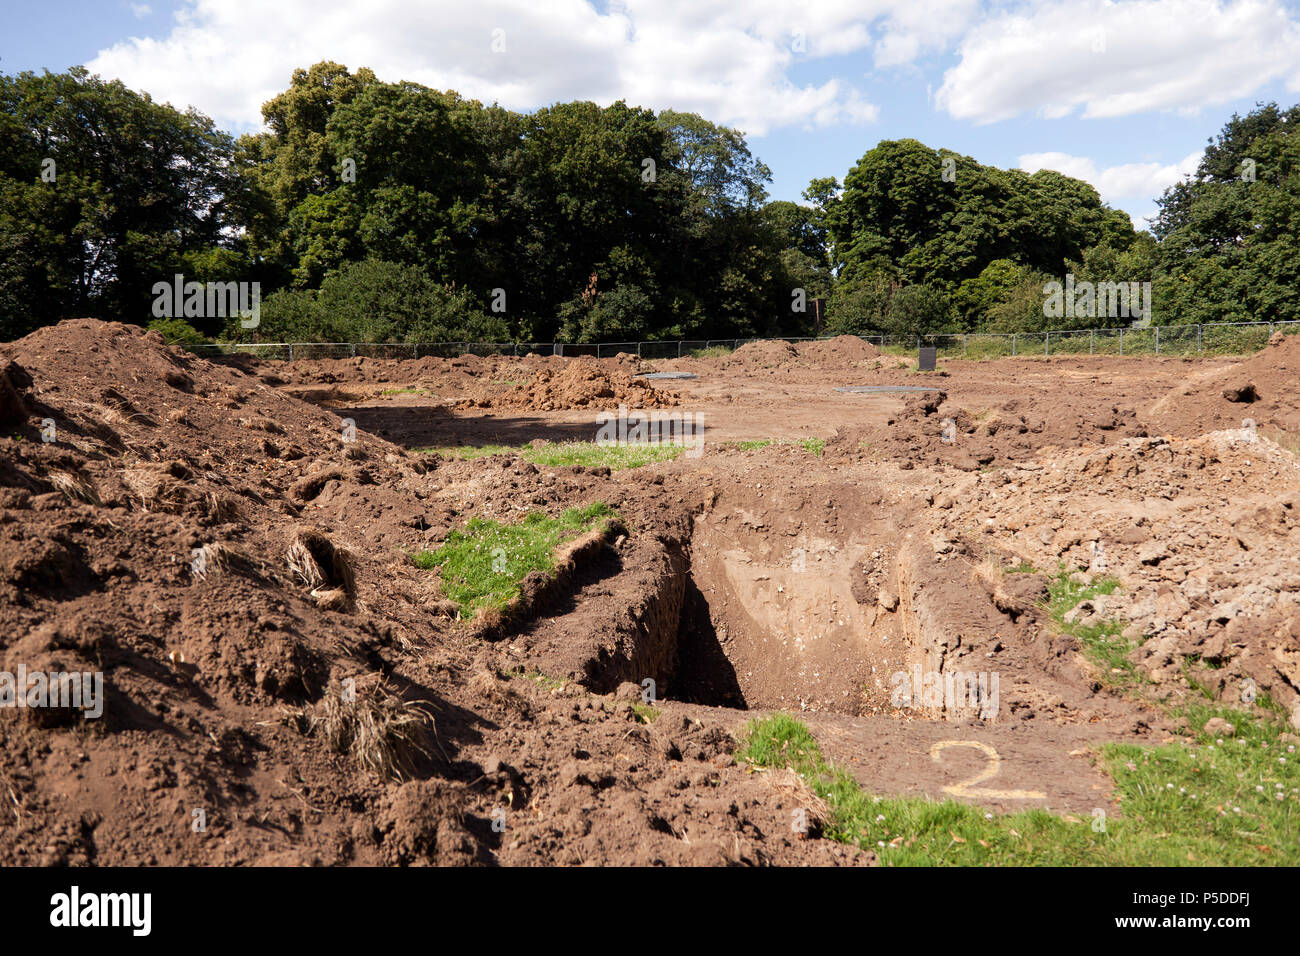 Areas of Beckenham Place Park disrupted by Lewisham Councils improvements funded by the Heritage Lottery Fund and Sadiq Khan - Stock Image